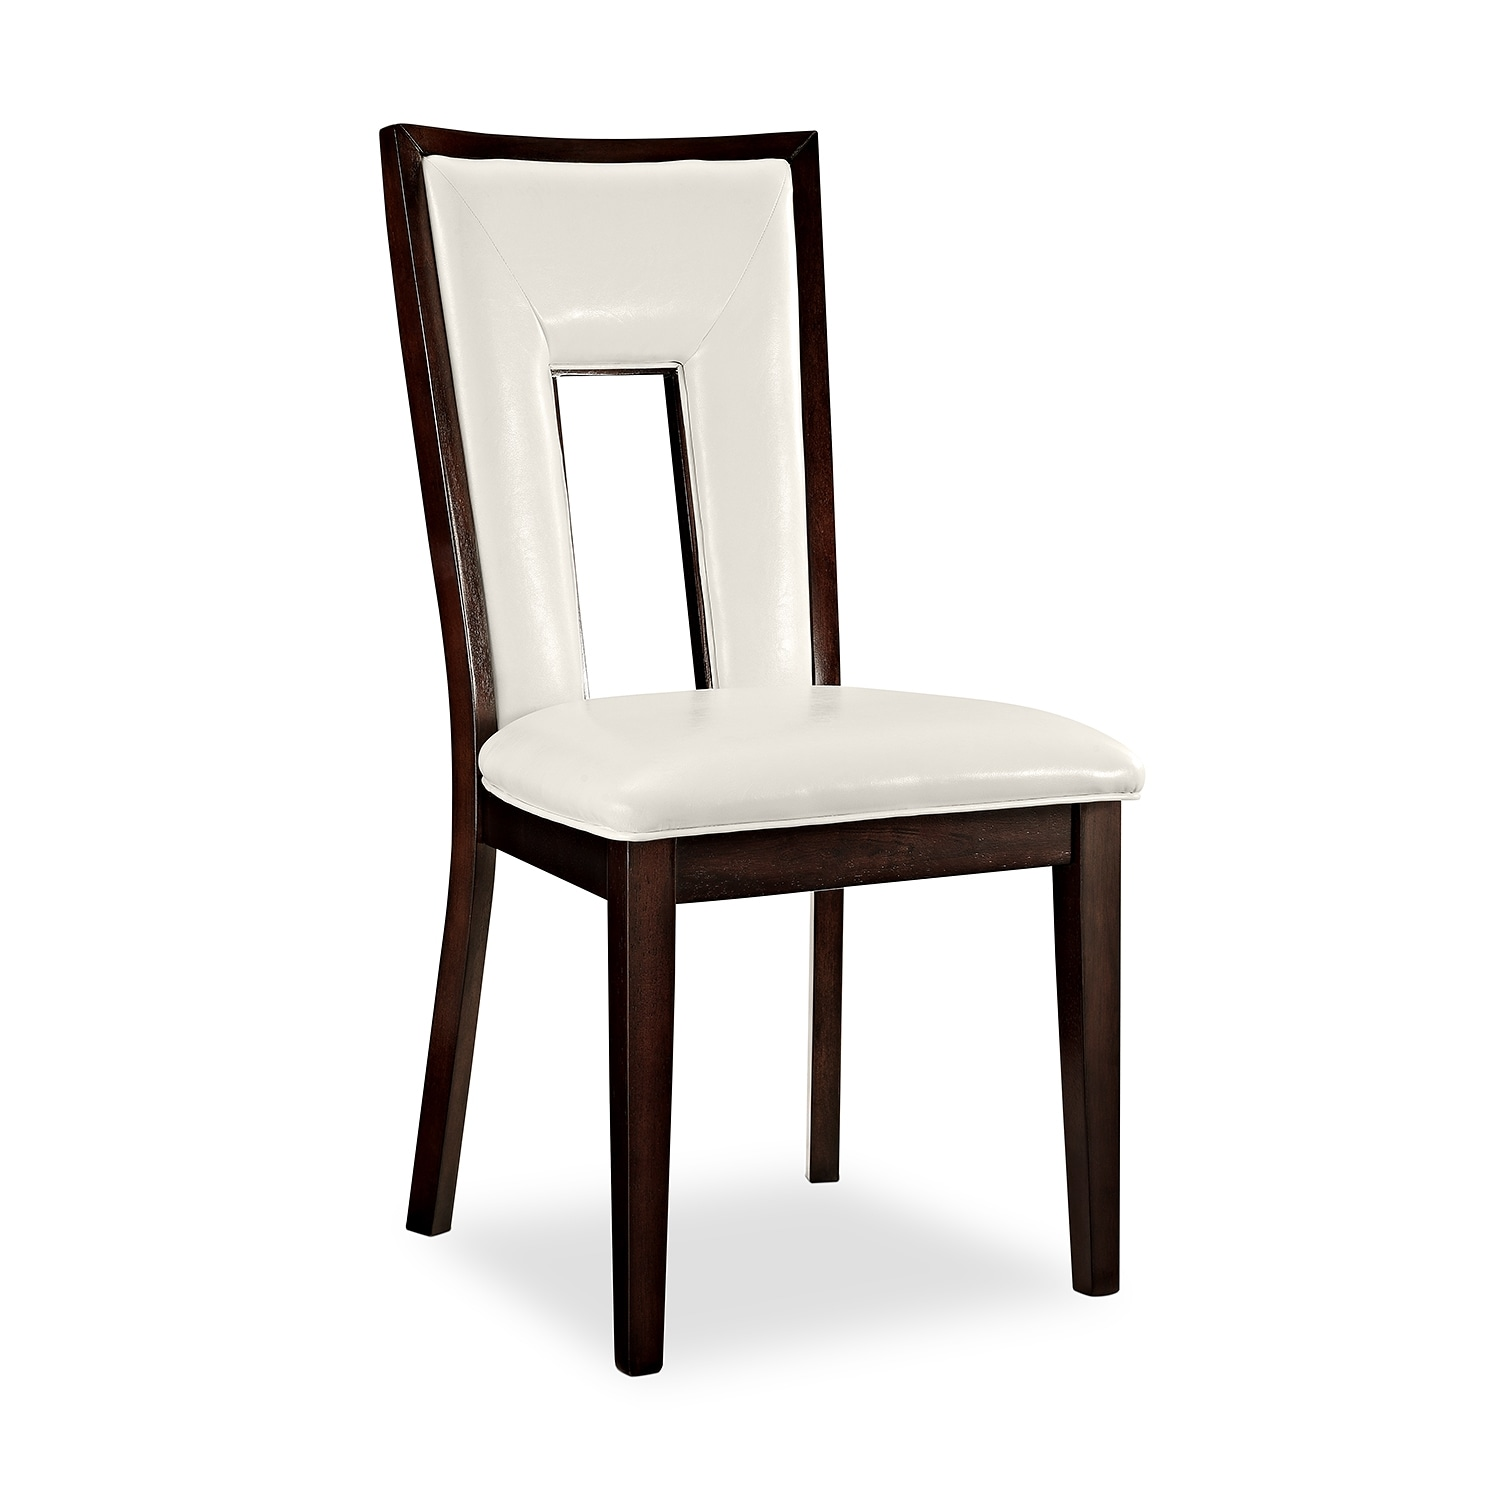 Dining Room Furniture - Madera Chair